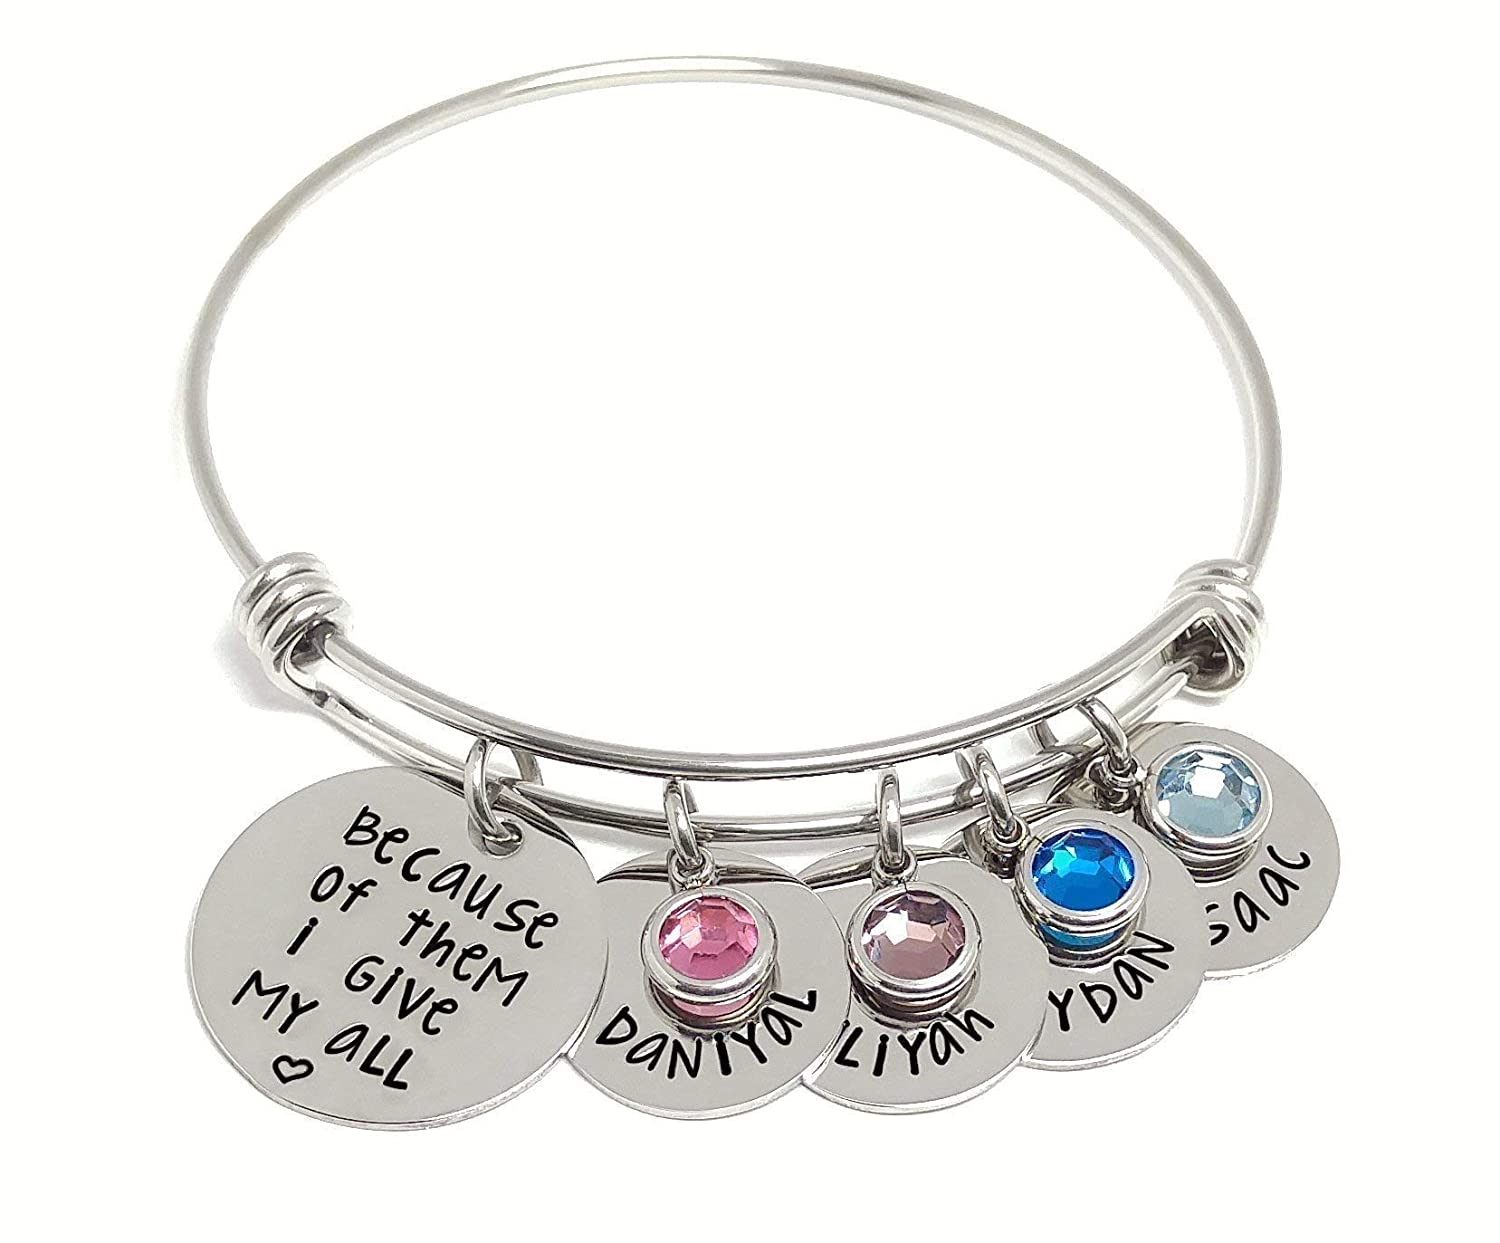 Personalized Charm Max 79% OFF Bangle Bracelet Birthstone And - Special Campaign Name